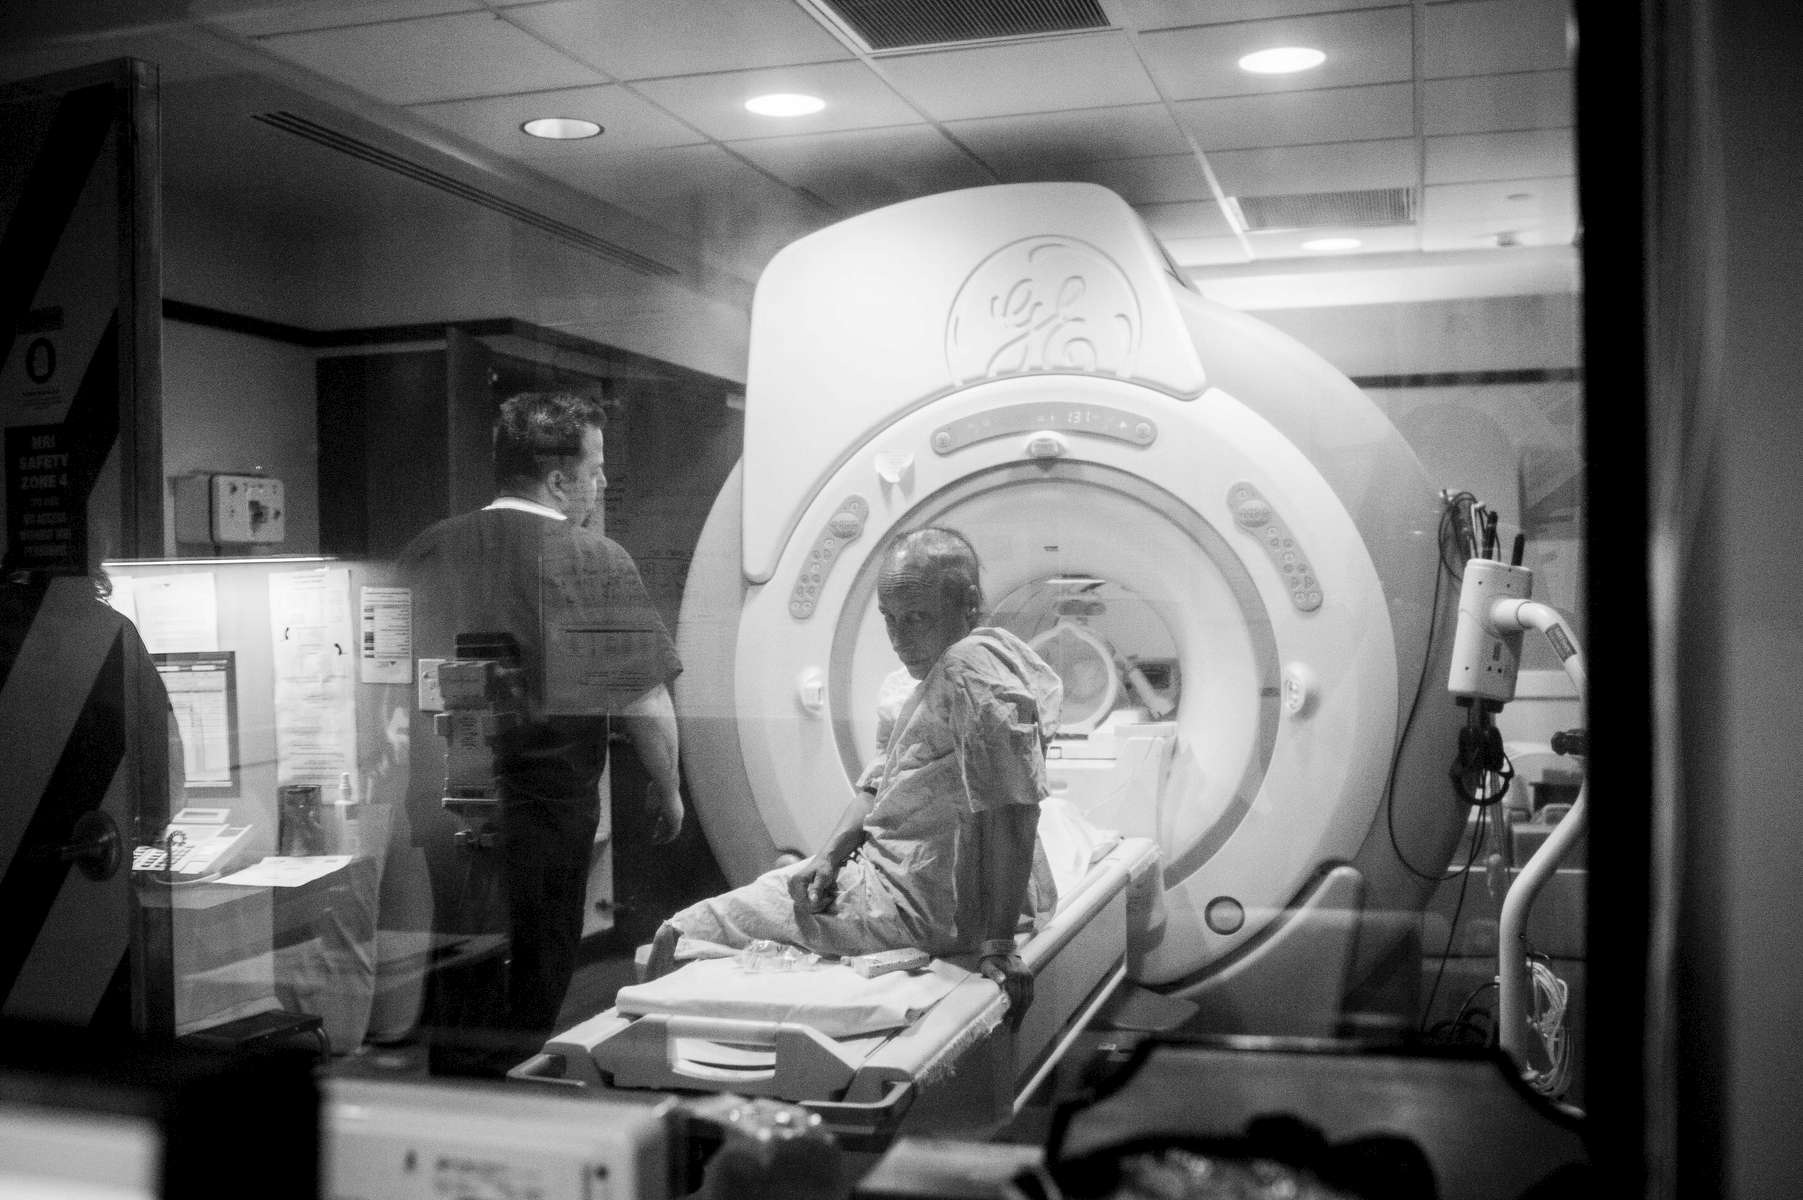 Mom prepared to have a brain scan one afternoon, hoping to find out if the tumors had shrunk after starting a new treatment.